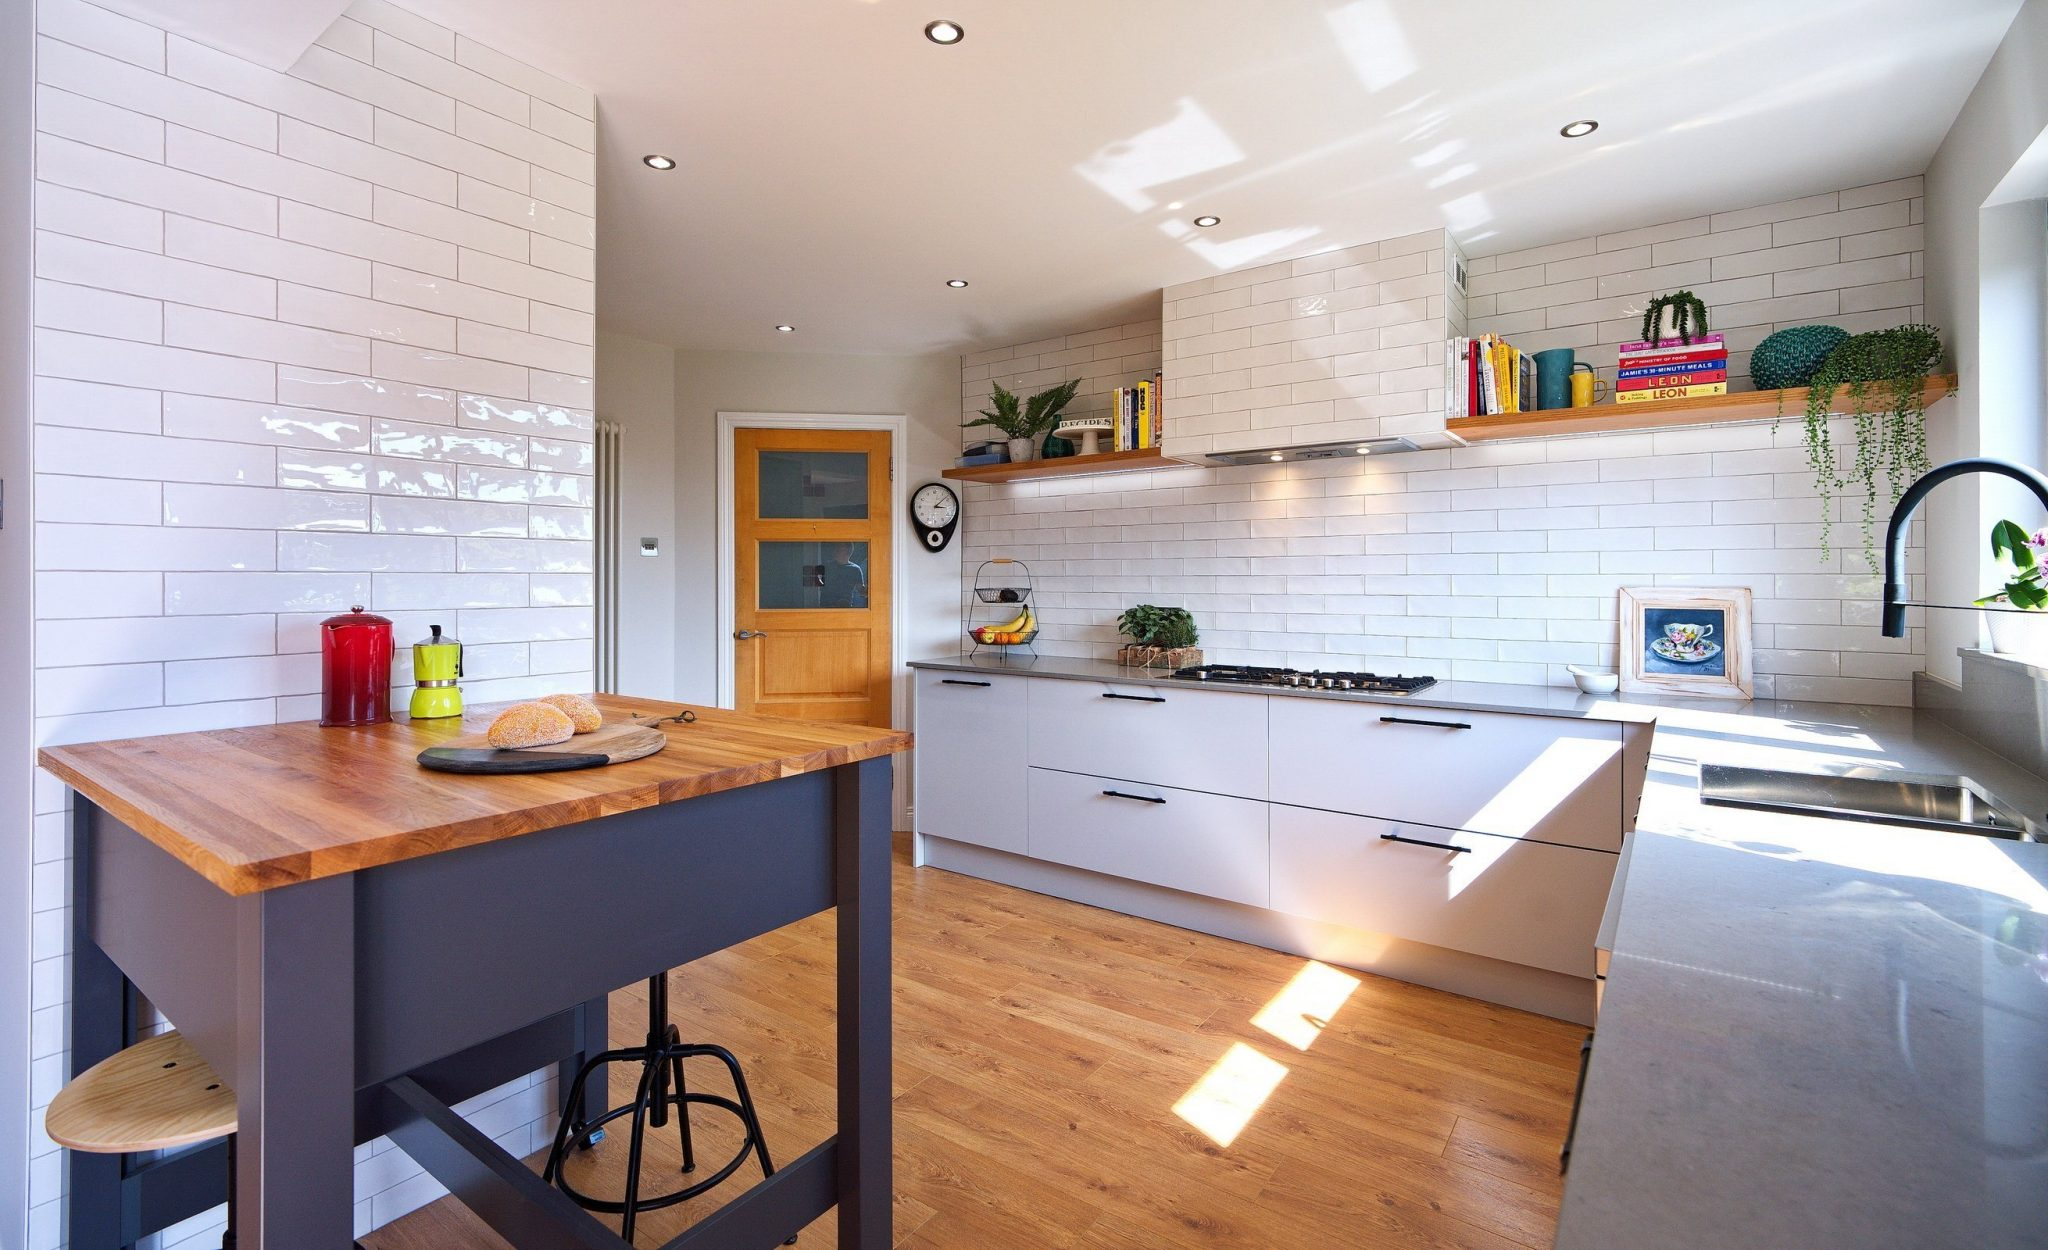 Modern kitchen with white tiles and grey worktops